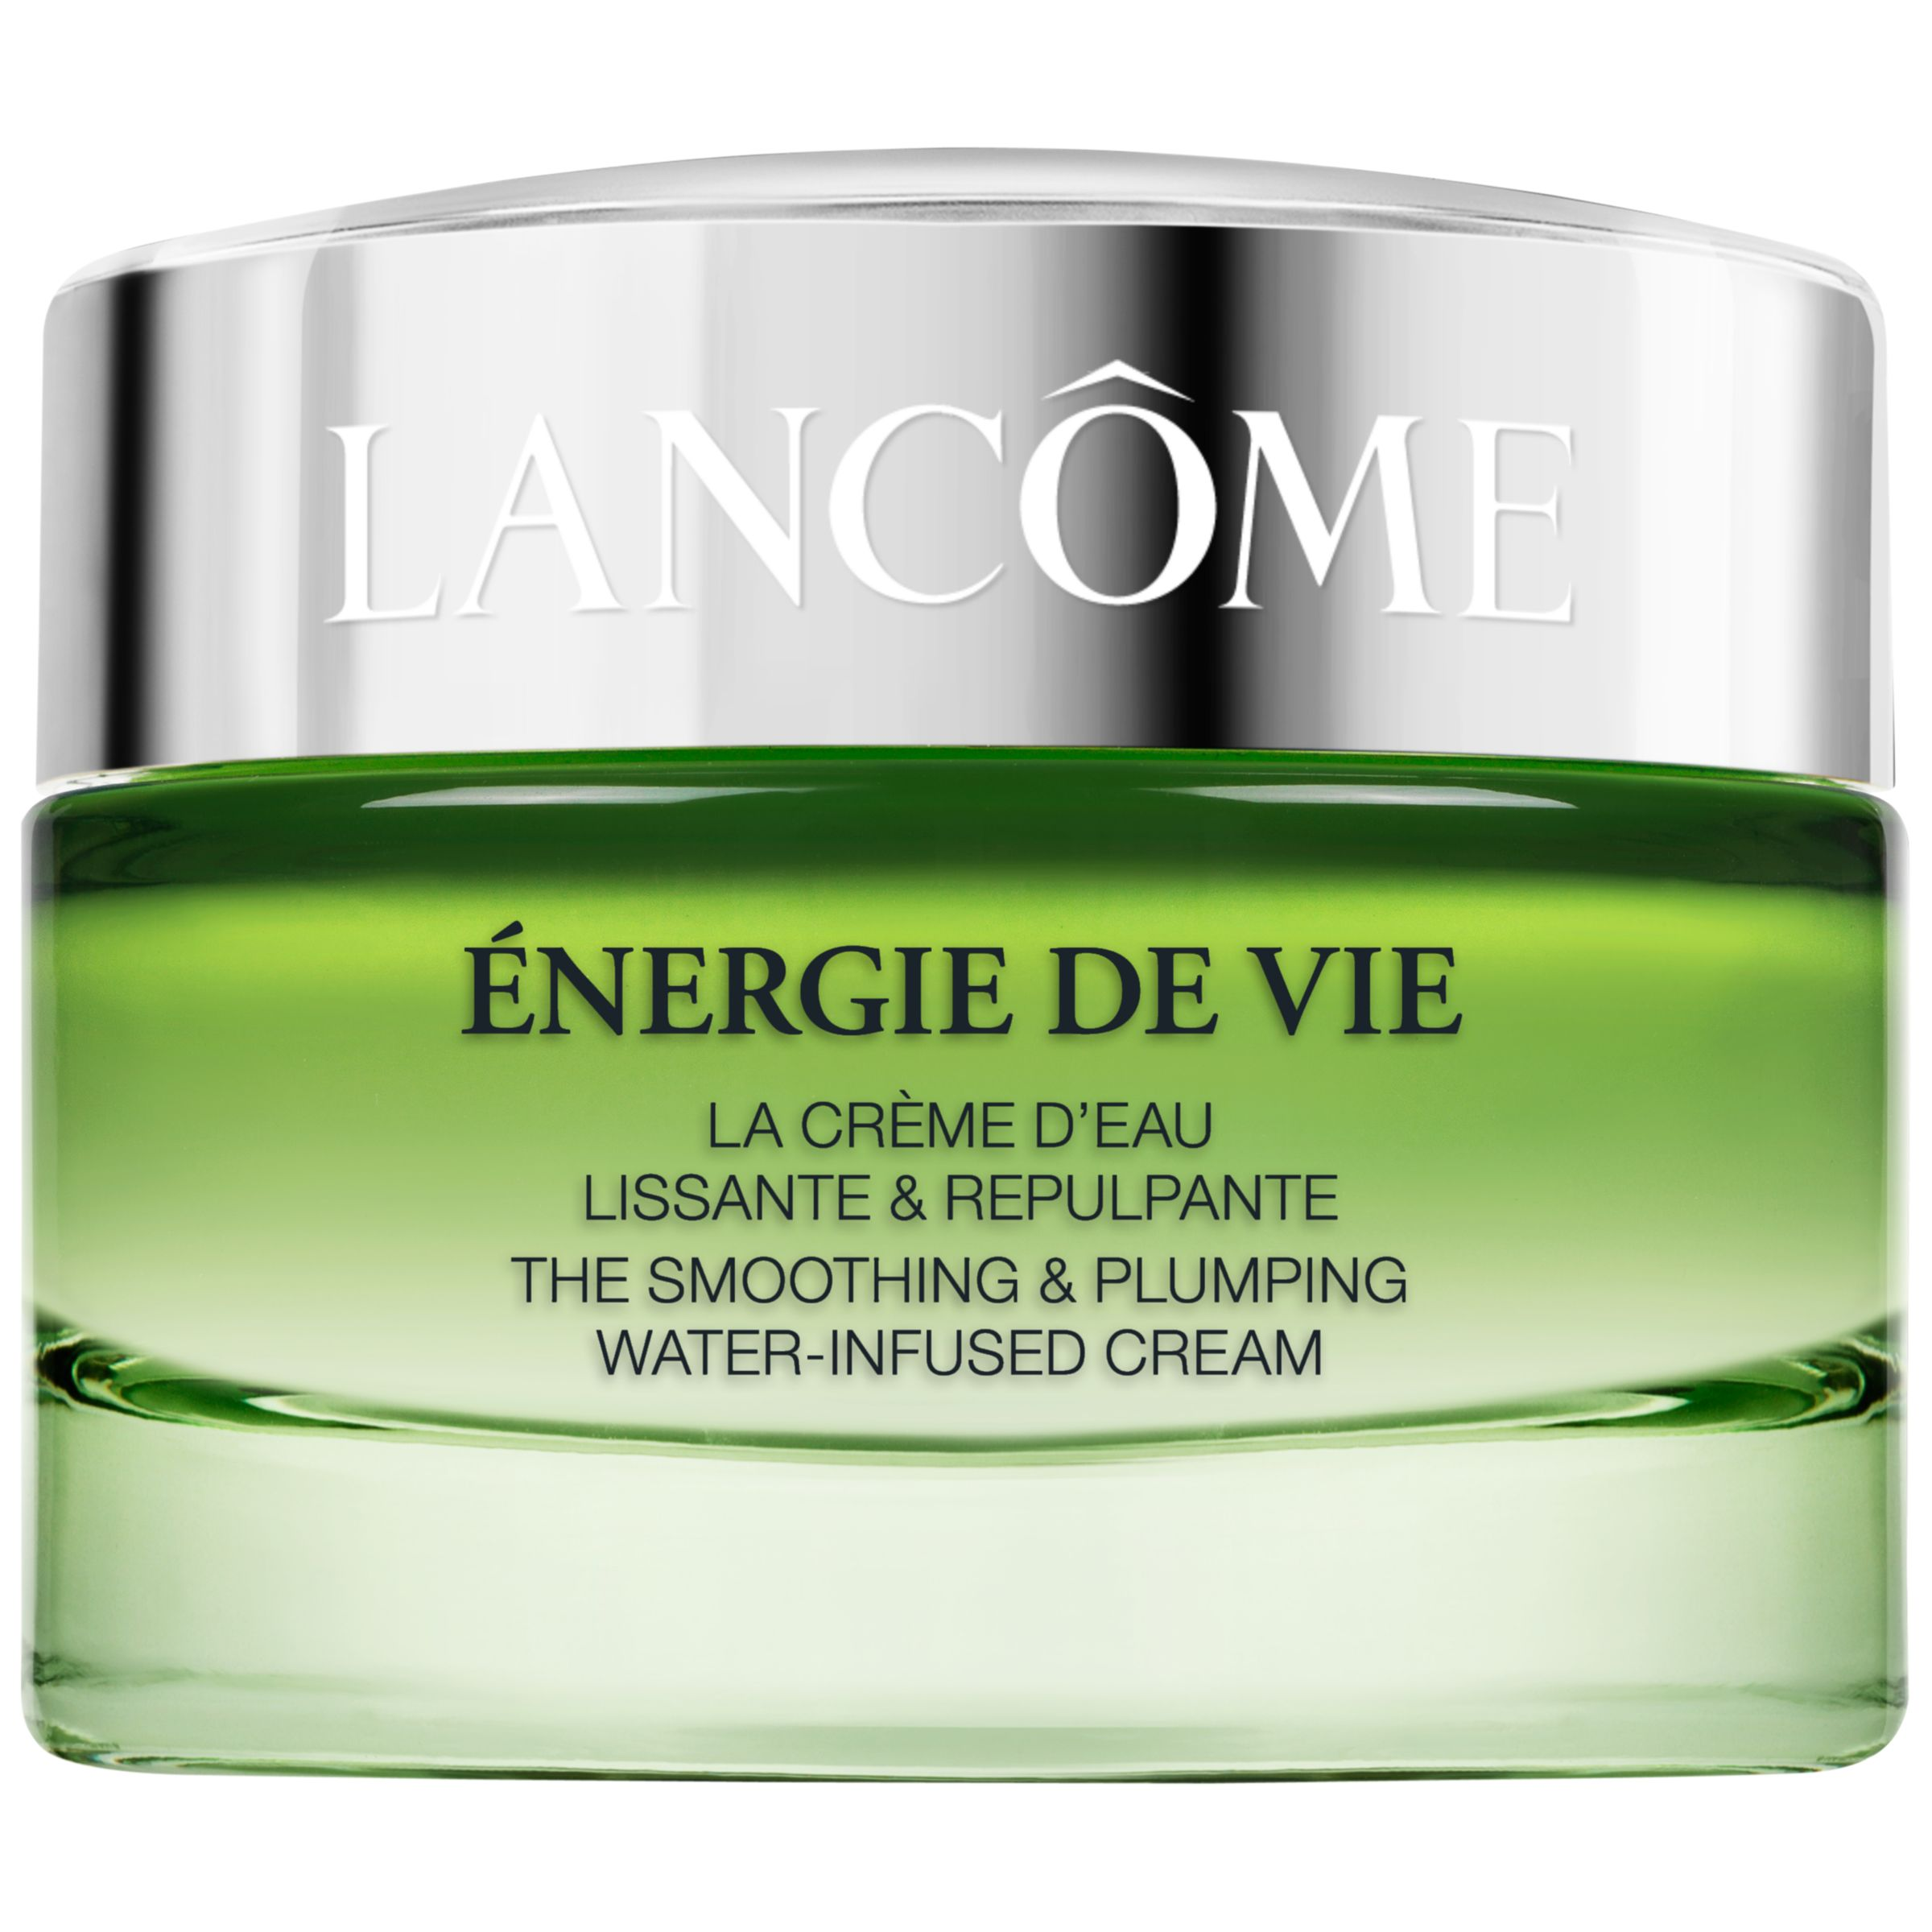 Lancome Lancôme Energie De Vie The Smoothing and Plumping Water-Infused Cream, 50ml